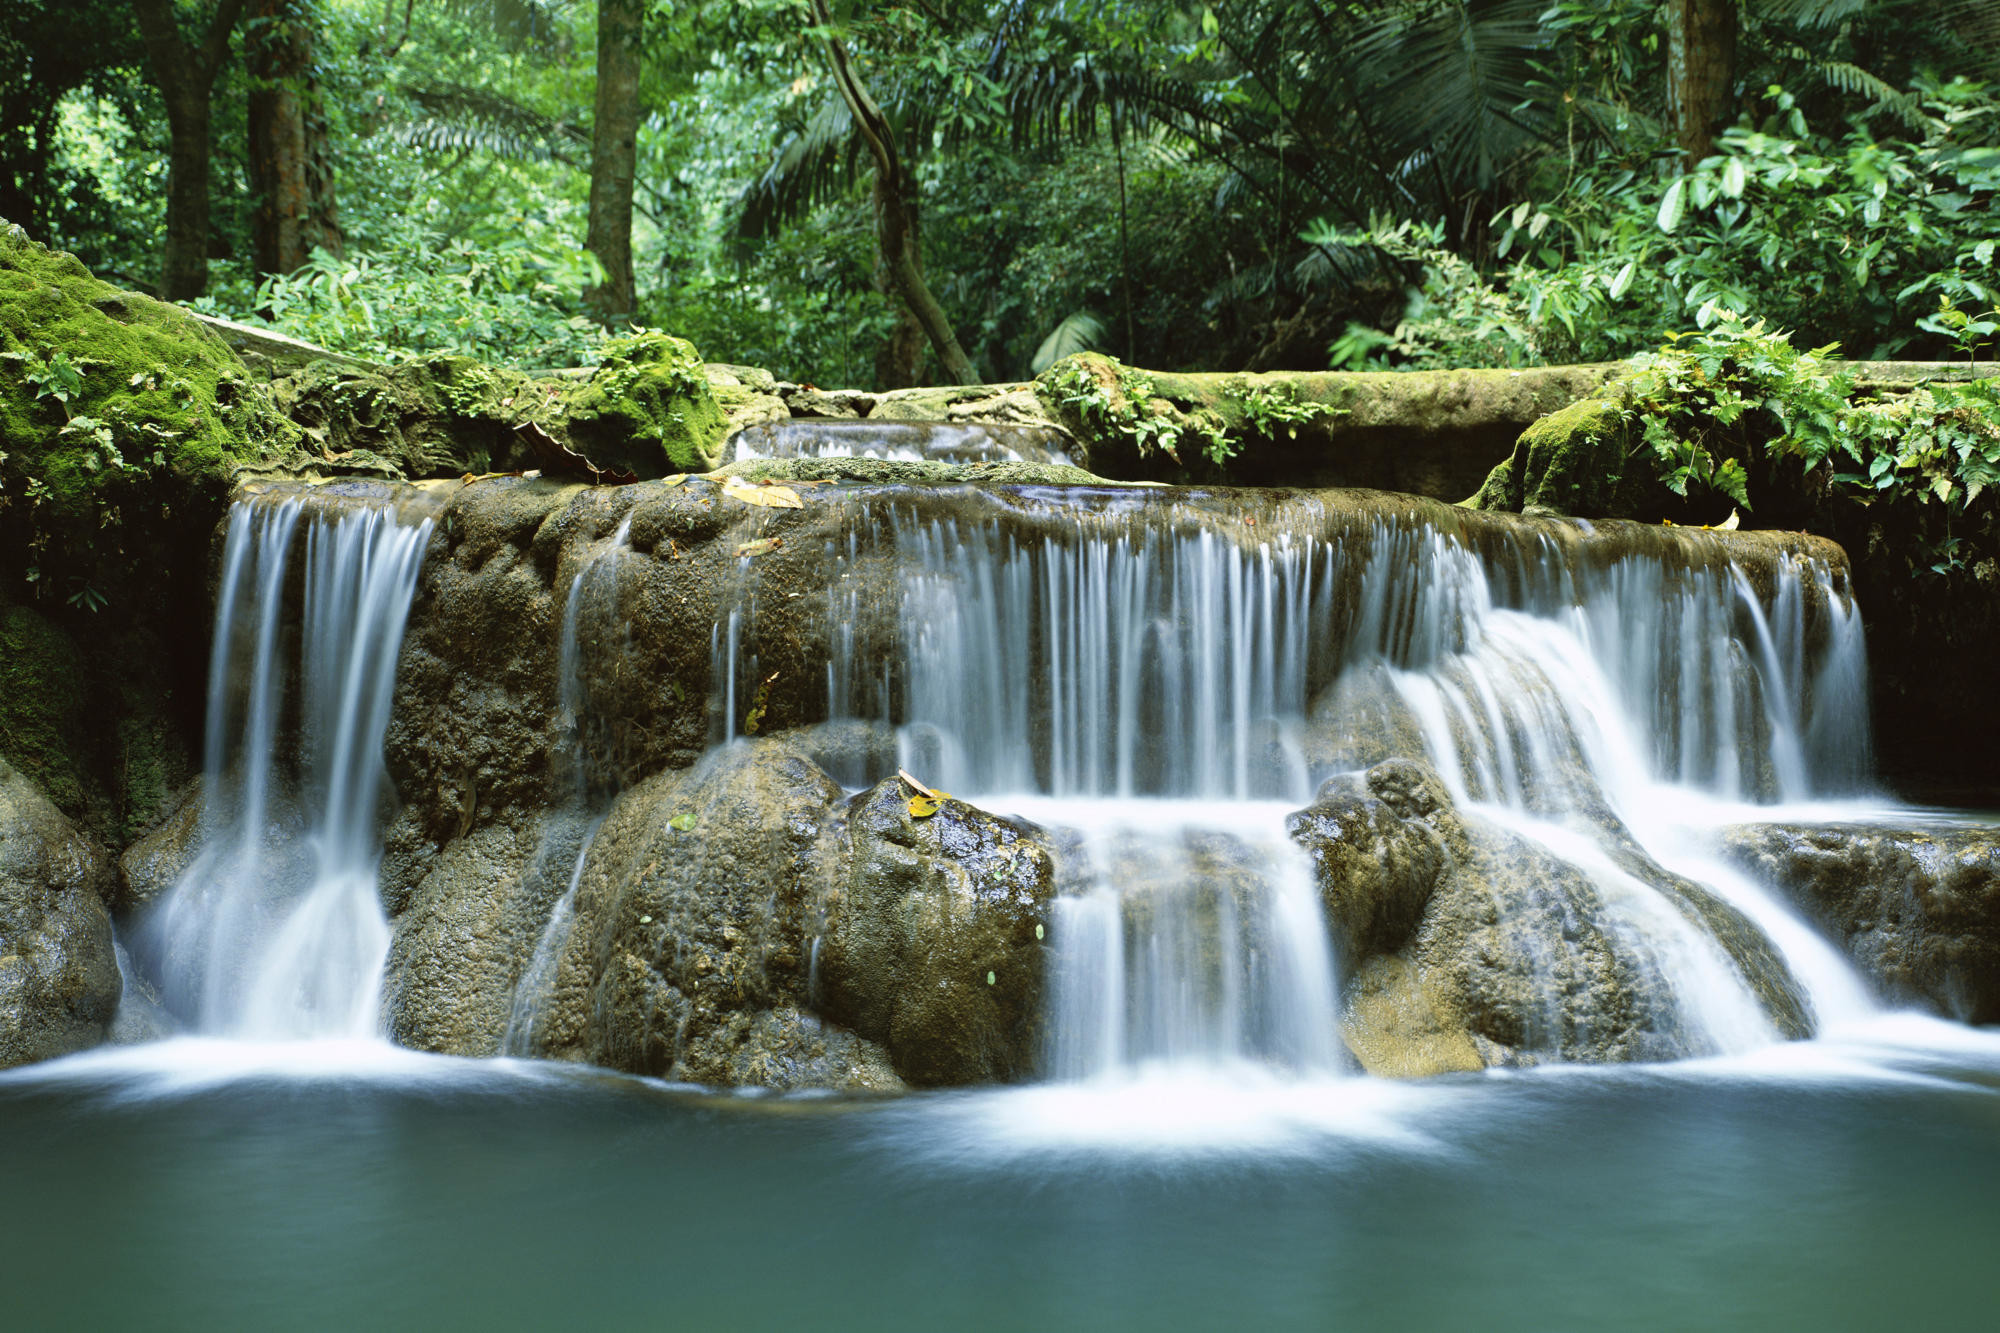 2000x1333 from moving waterfall wallpaper wallpaper moving waterfall wallpaper .